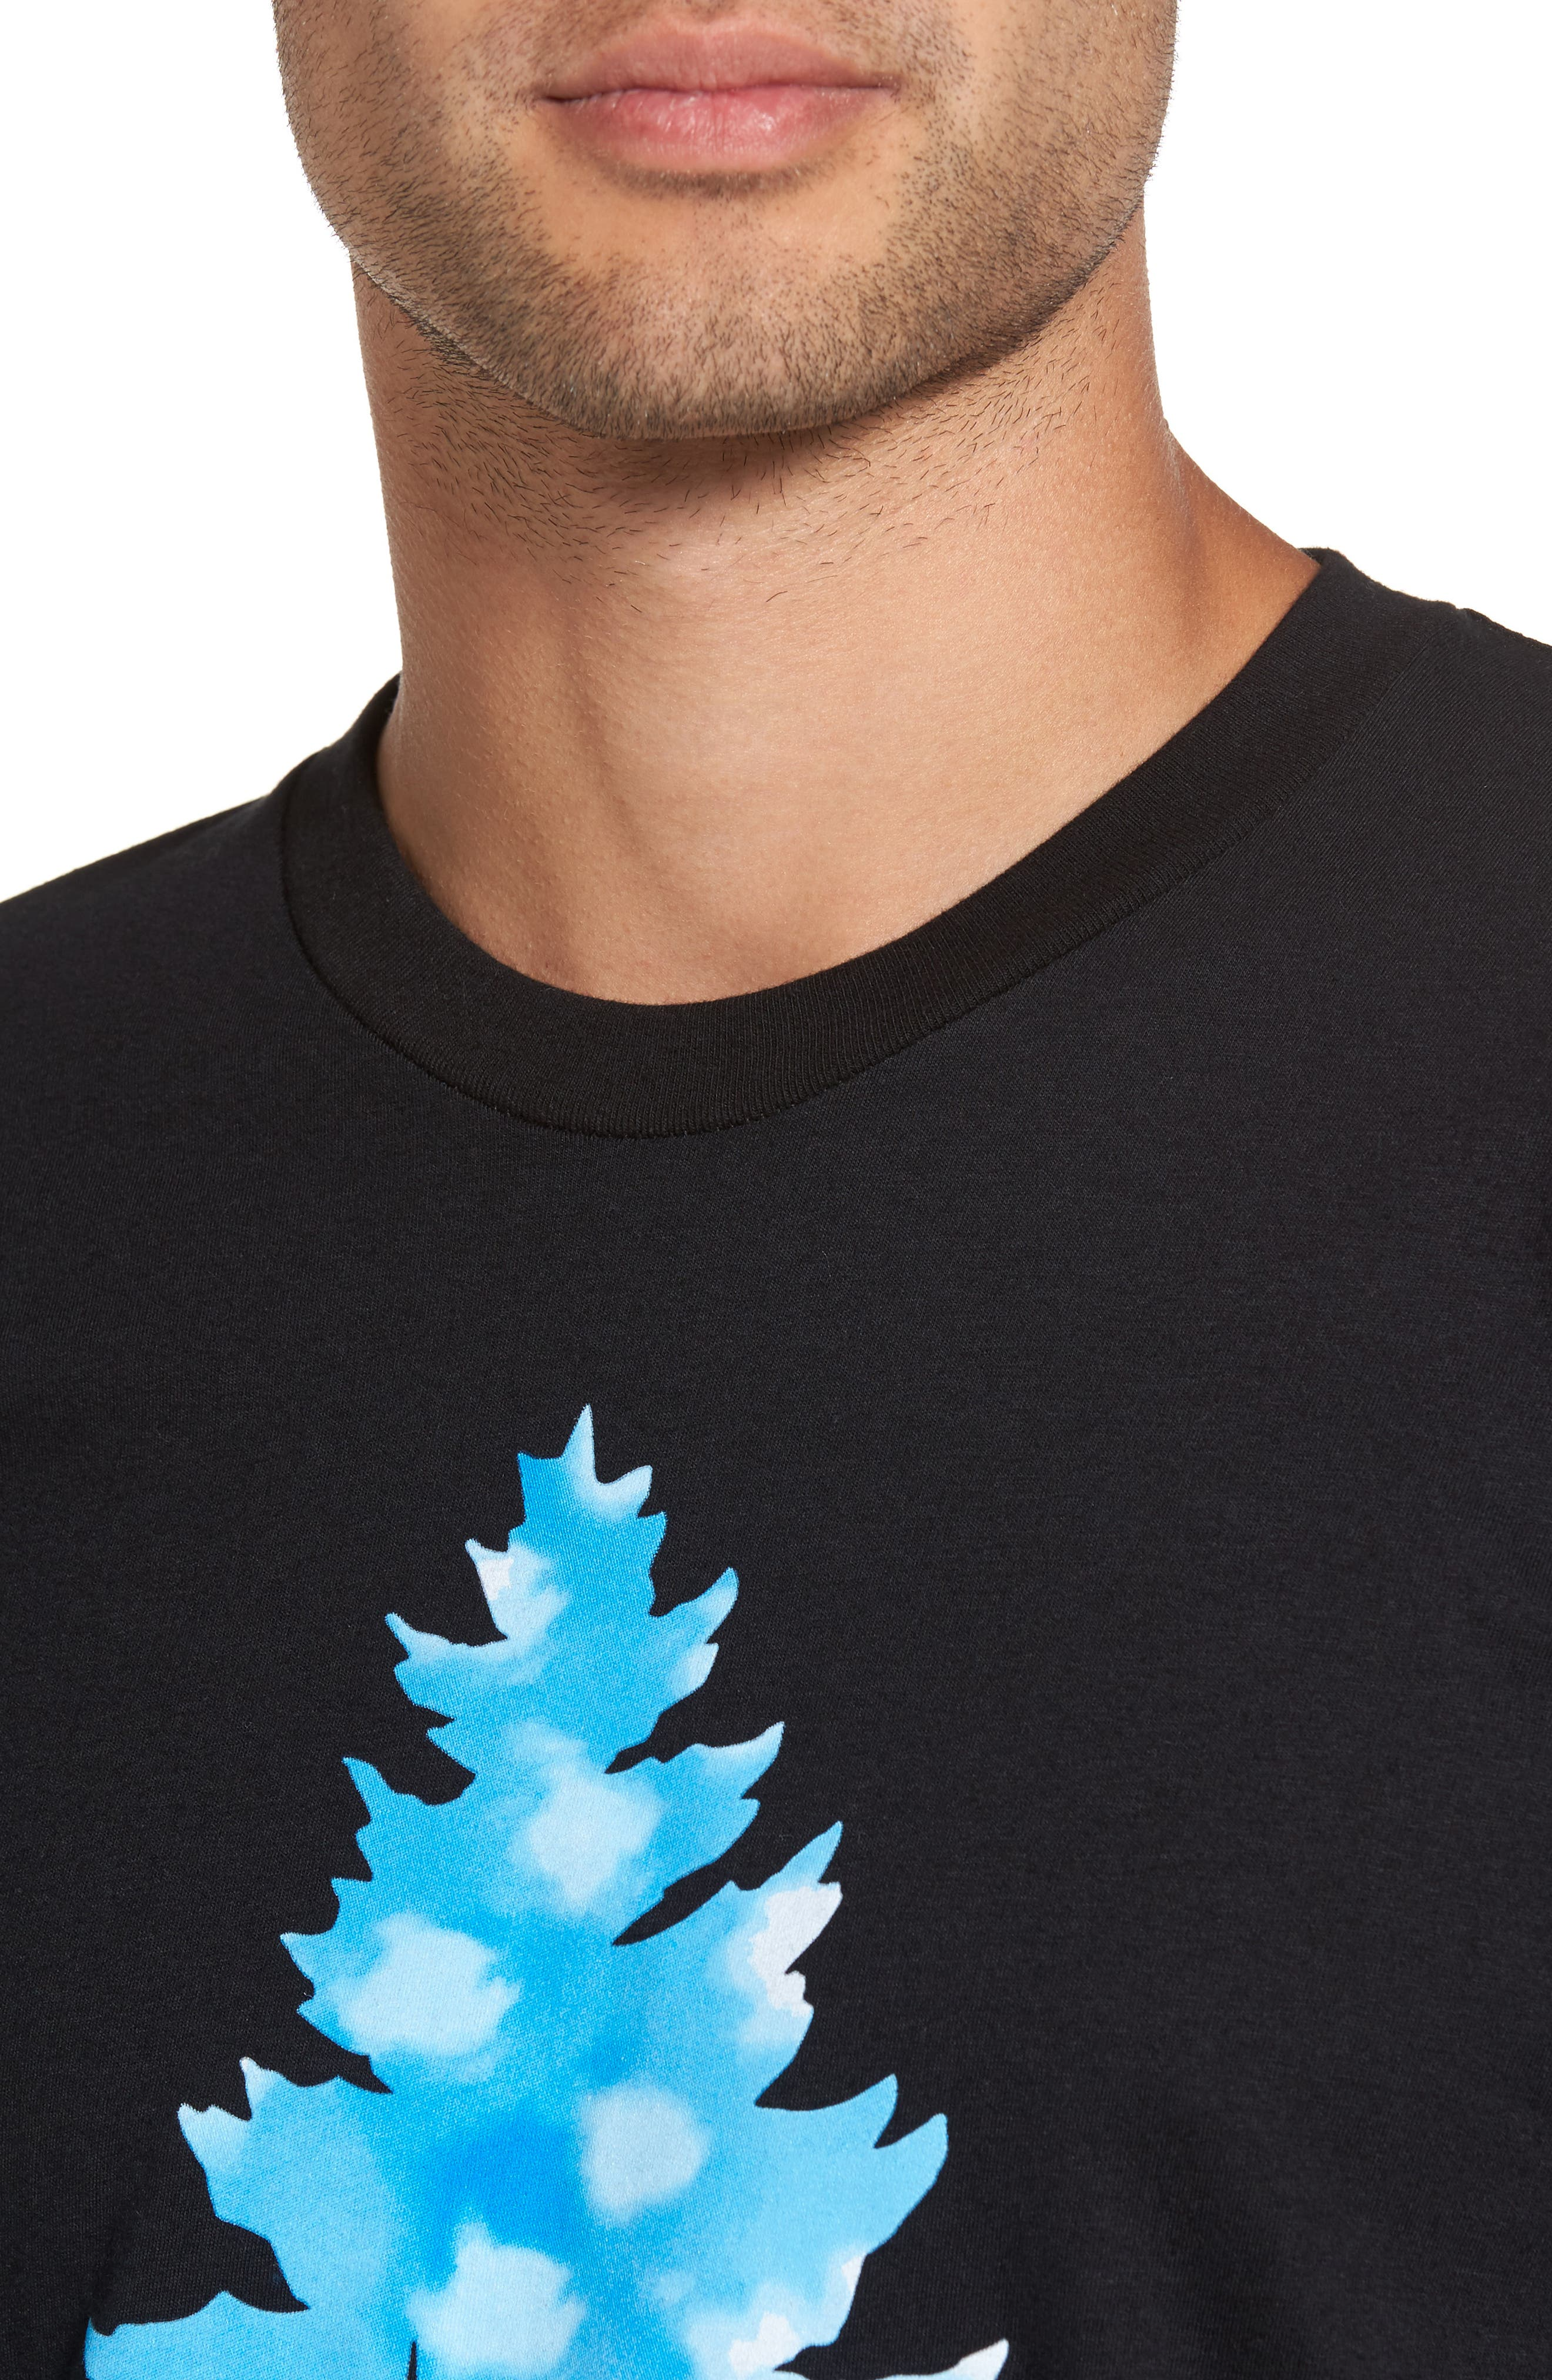 Johnny Tree Clouds T-Shirt,                             Alternate thumbnail 4, color,                             001